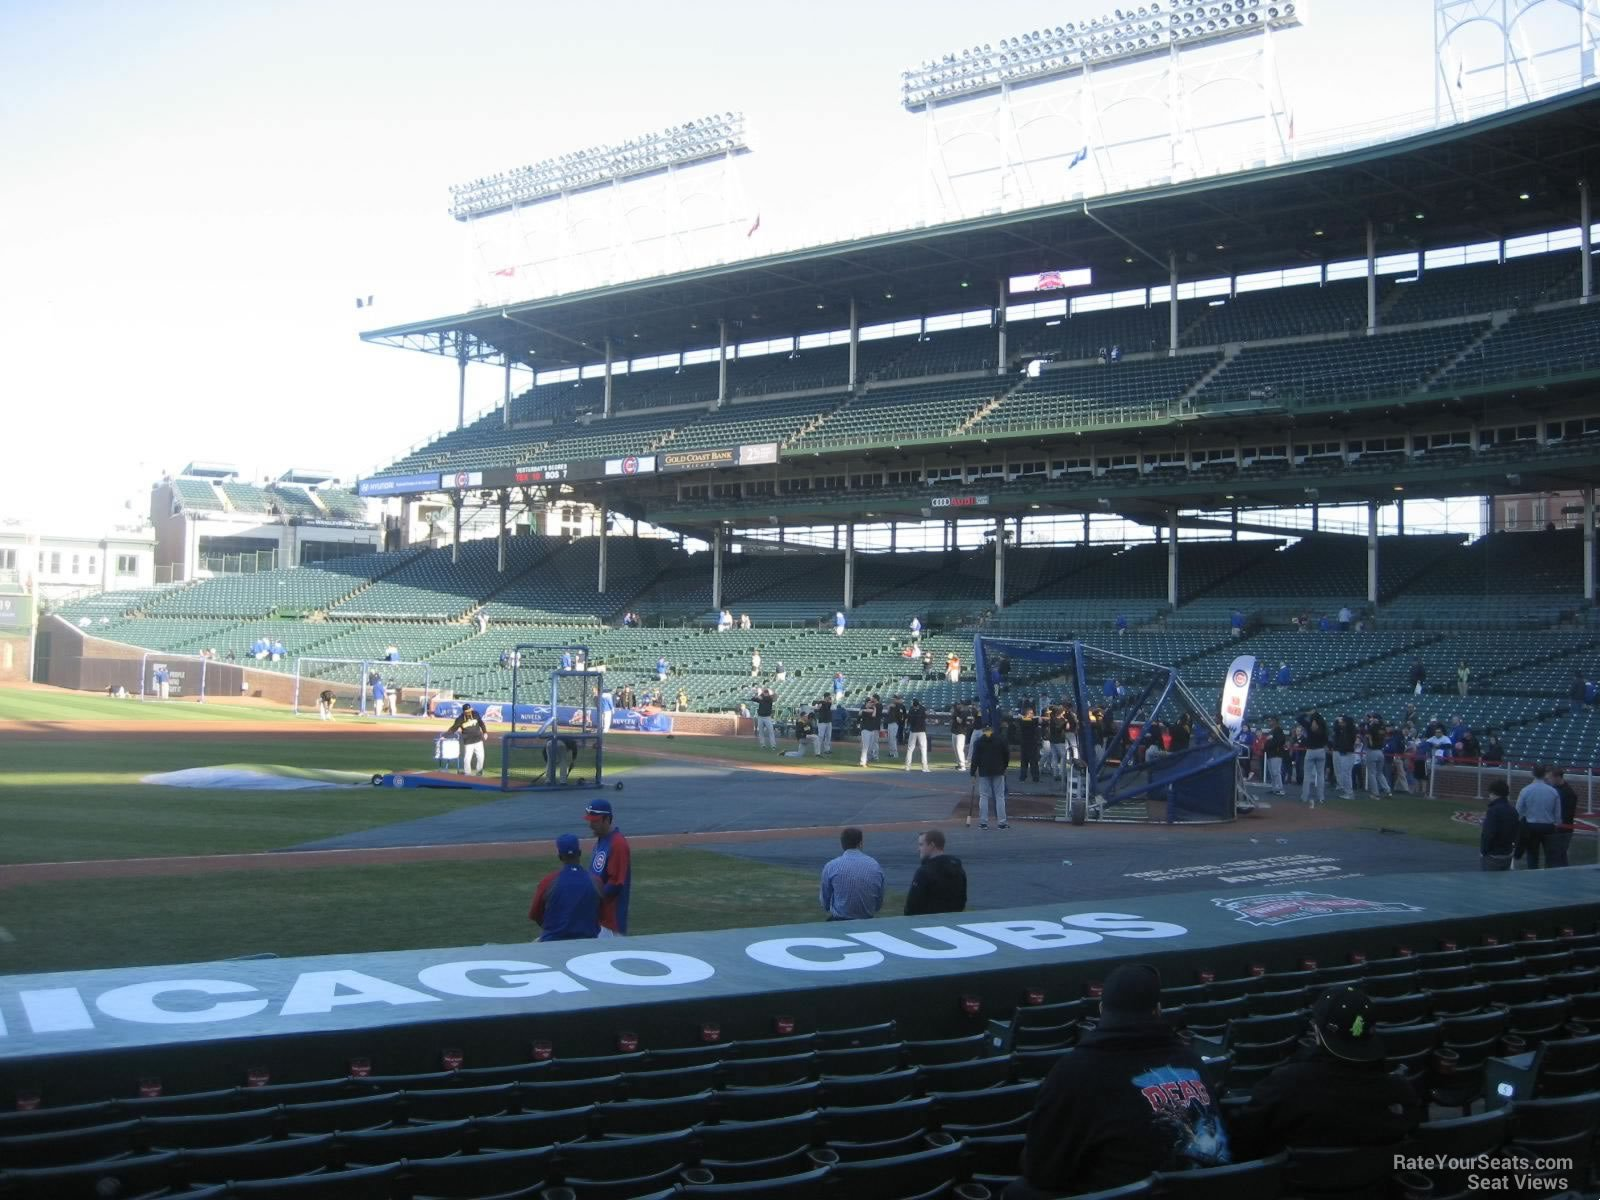 Seat View from Section 12 Row 10 at Wrigley Field